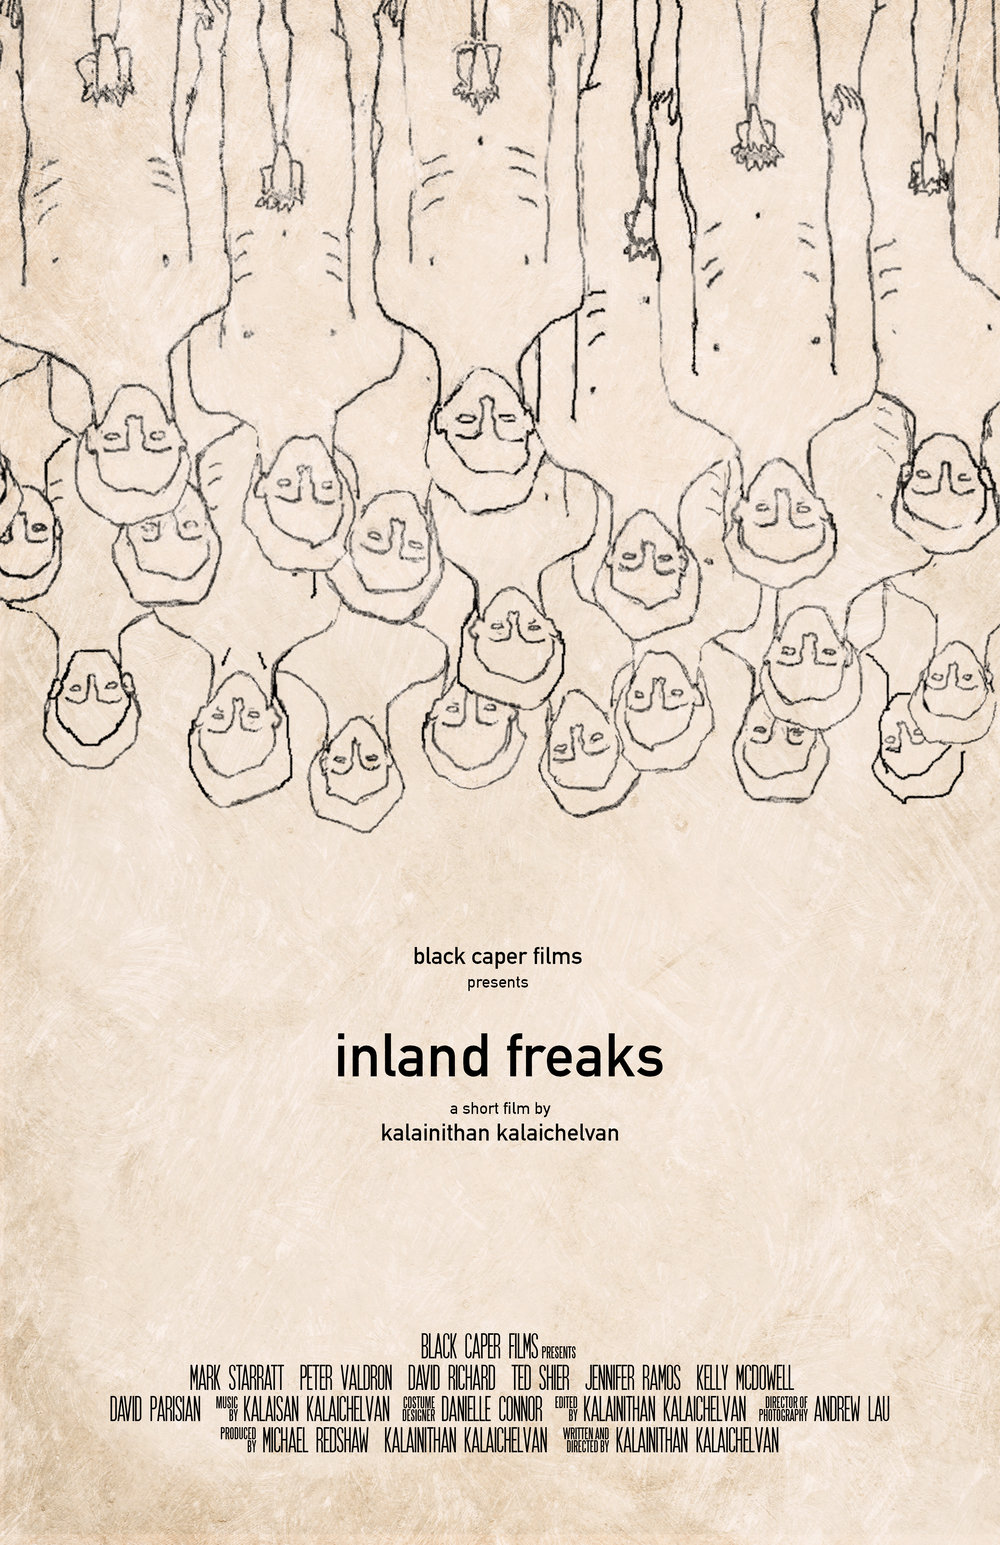 INLAND FREAKS FINAL POSTER (NOV 22).jpg